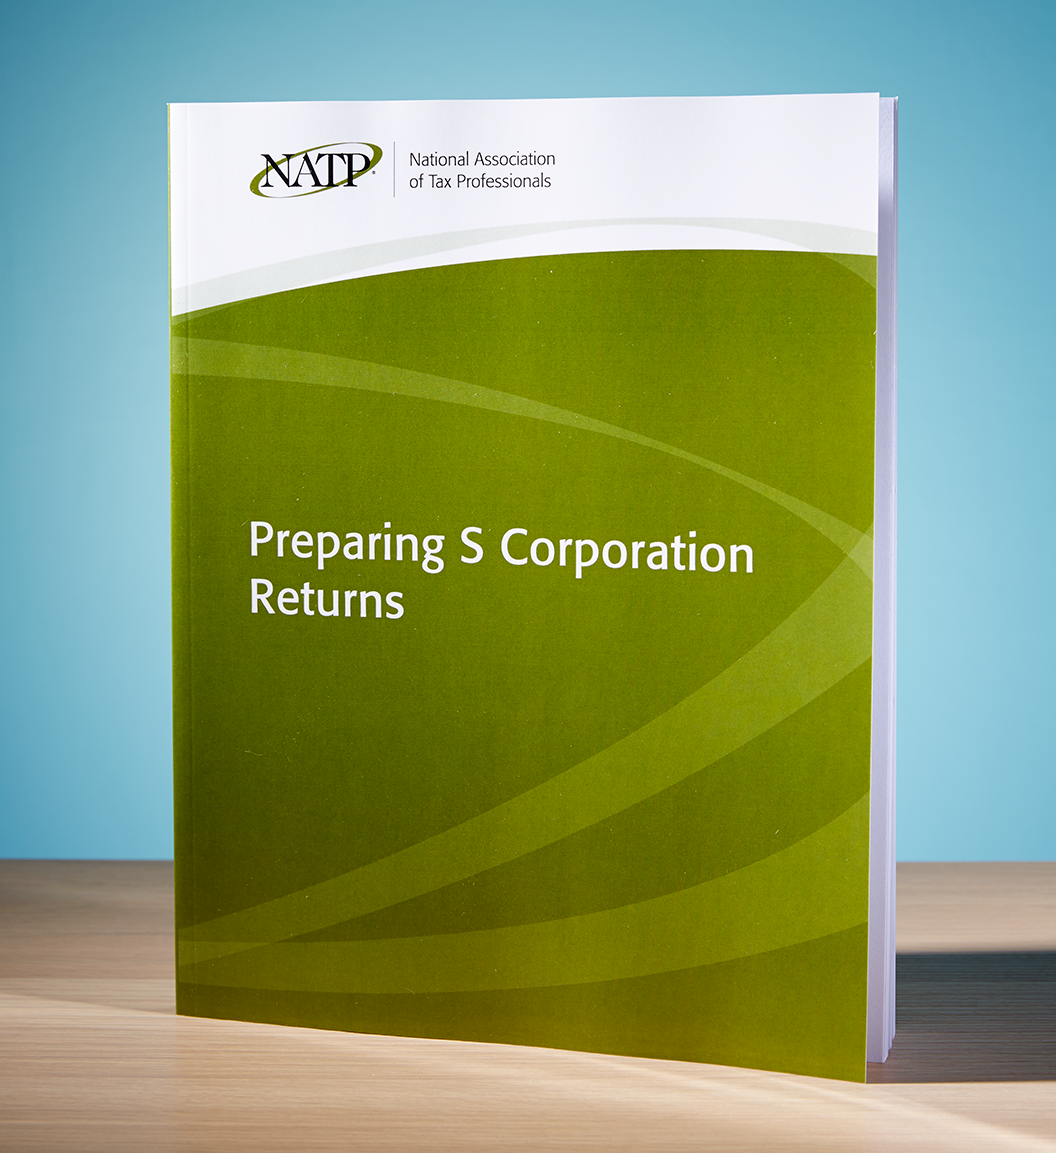 Preparing S Corporation Returns Textbook (2017) - #3748S